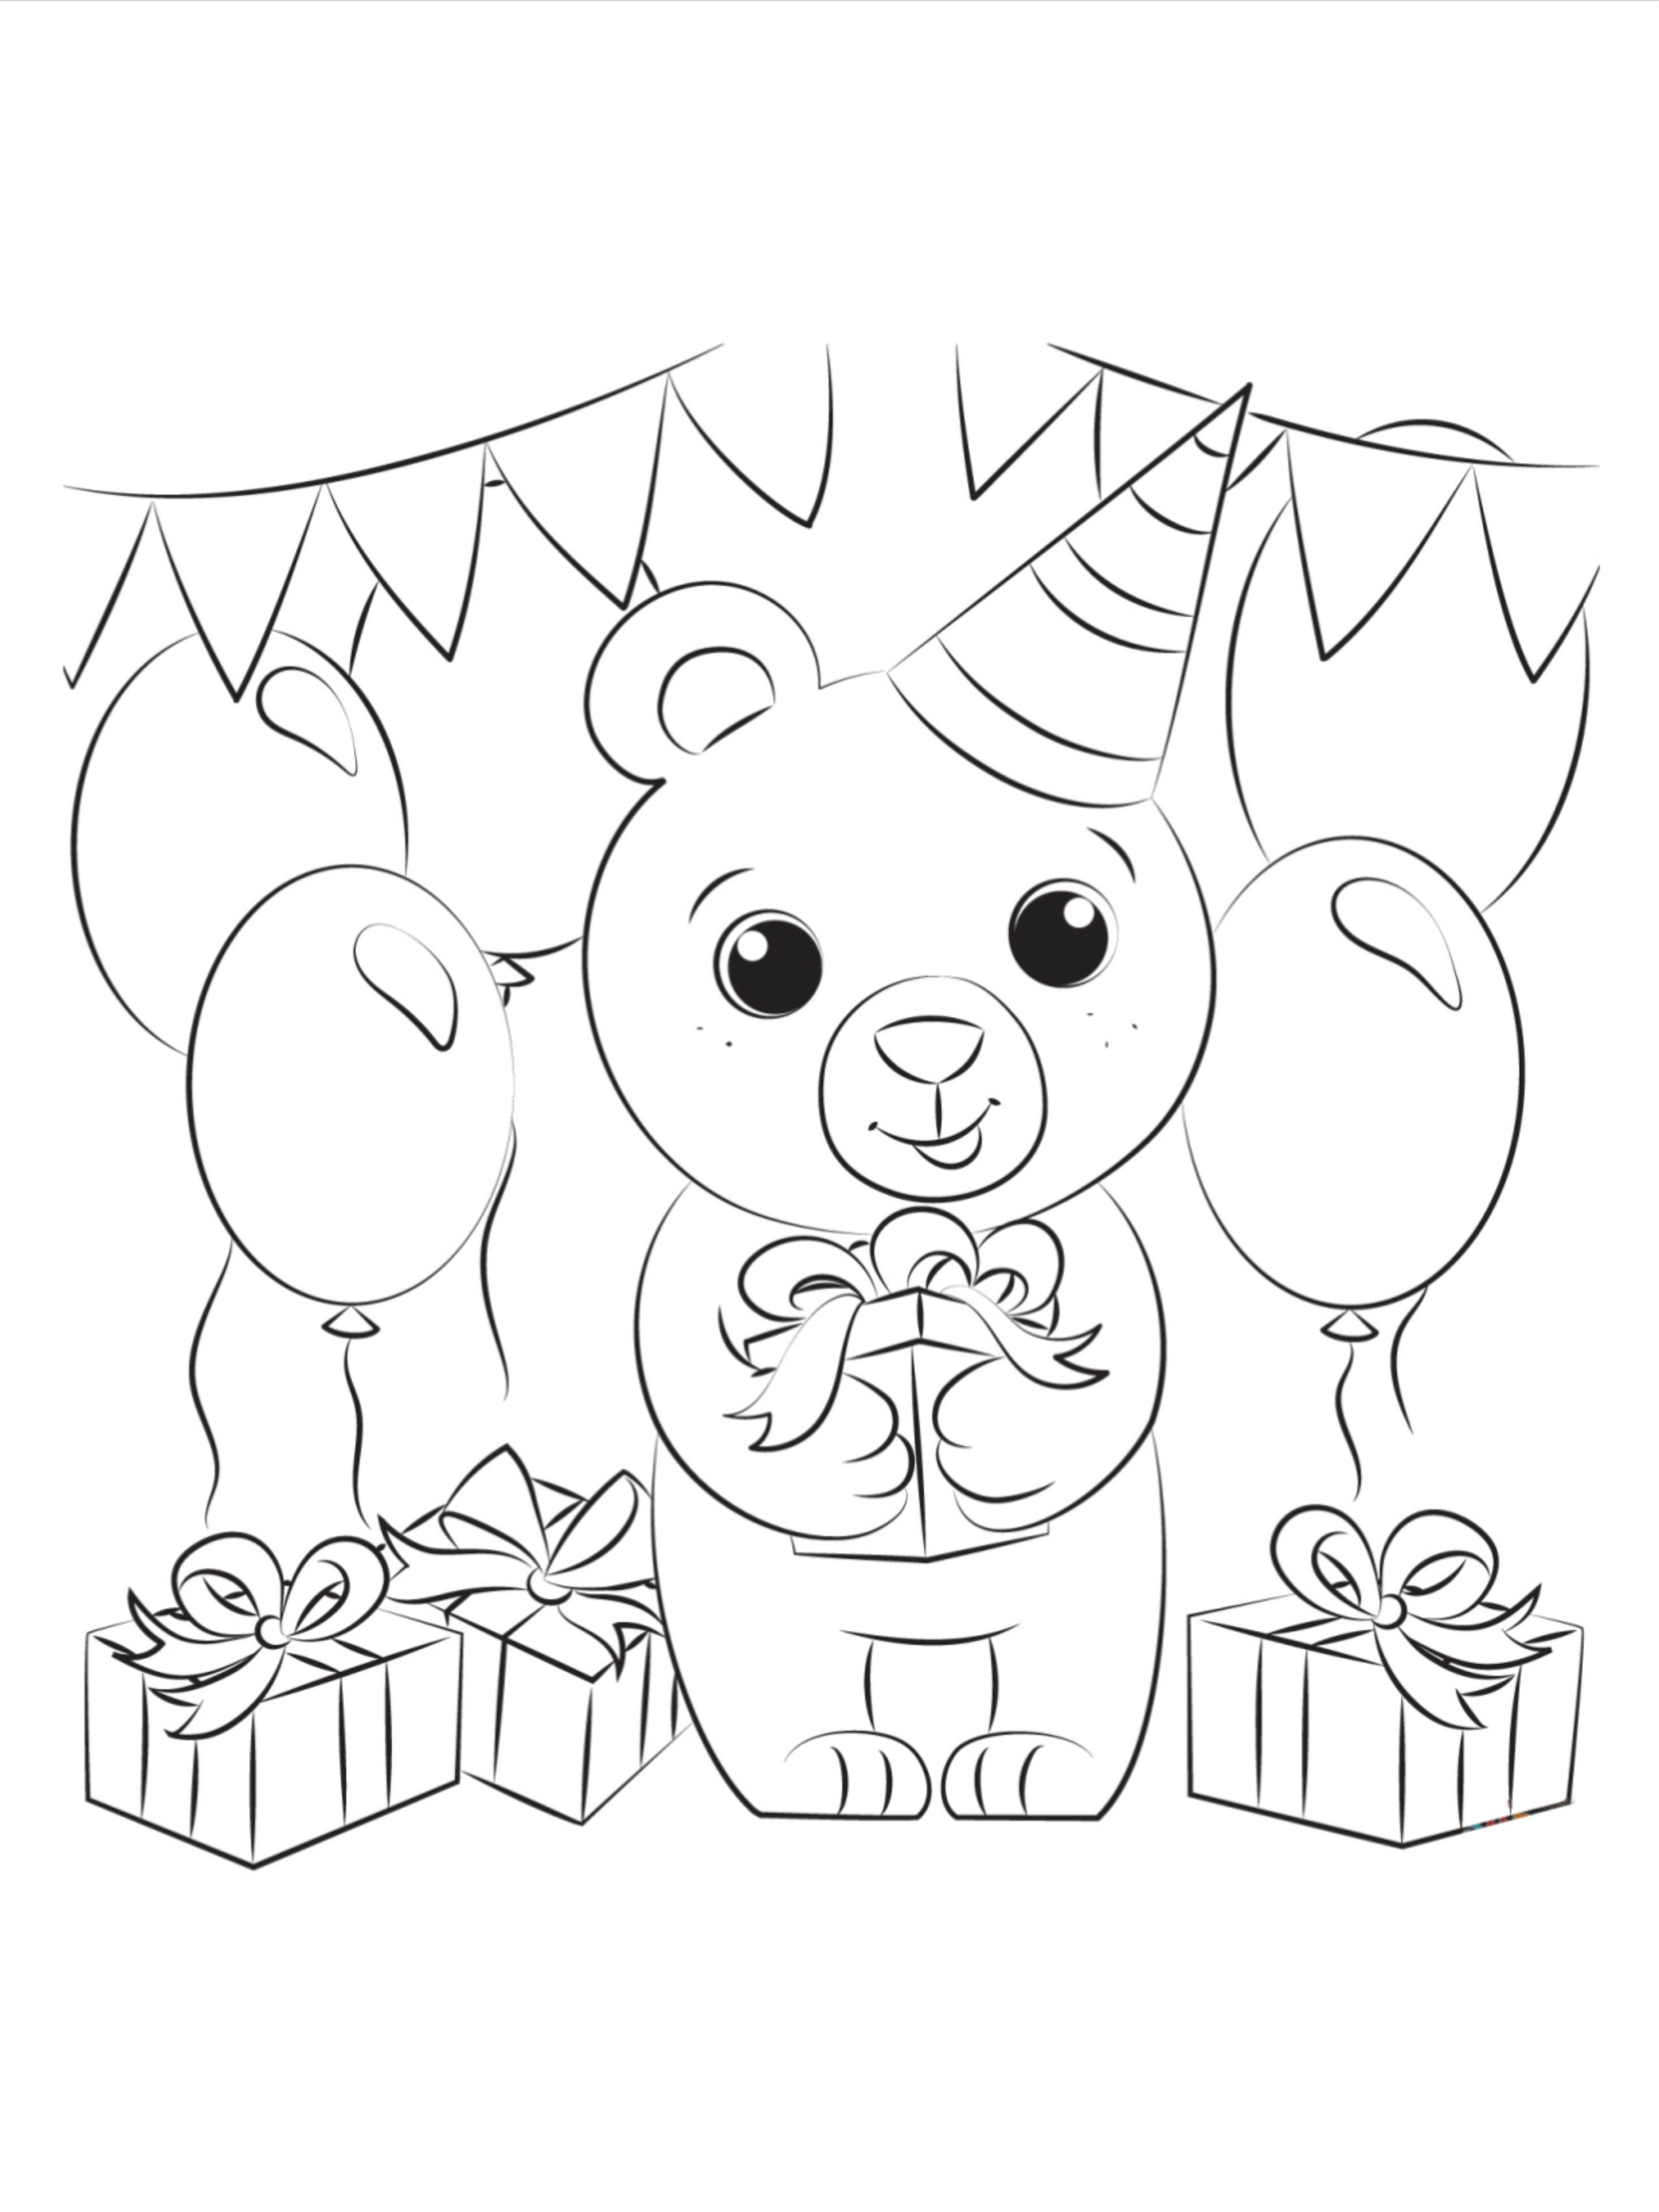 50 Birthday Coloring Pages For Kids Birthday Coloring Pages Cool Coloring Pages Happy Birthday Coloring Pages